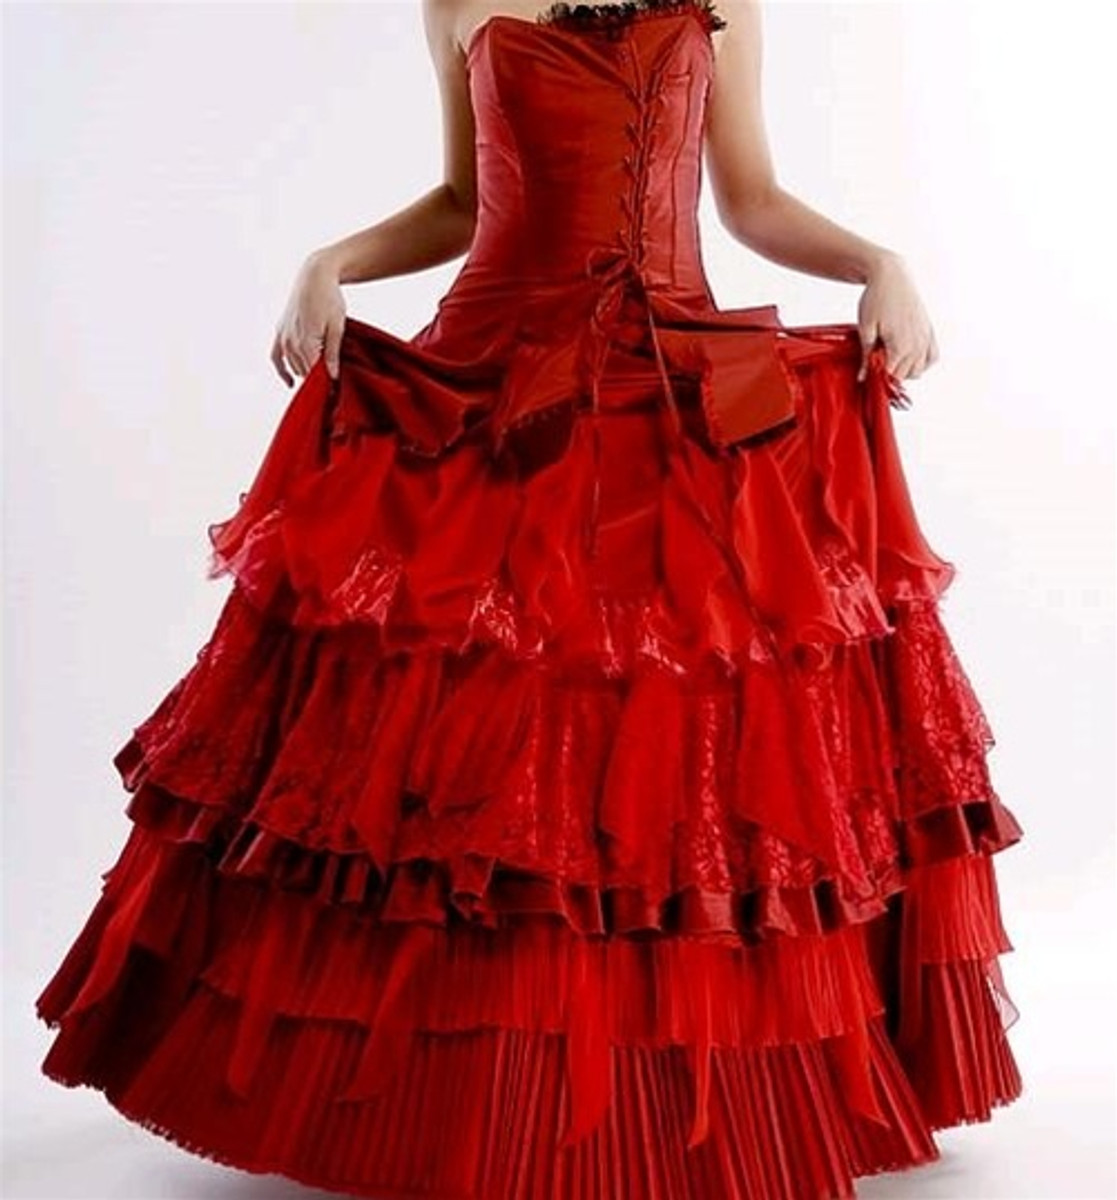 Red Corset Wedding Dress